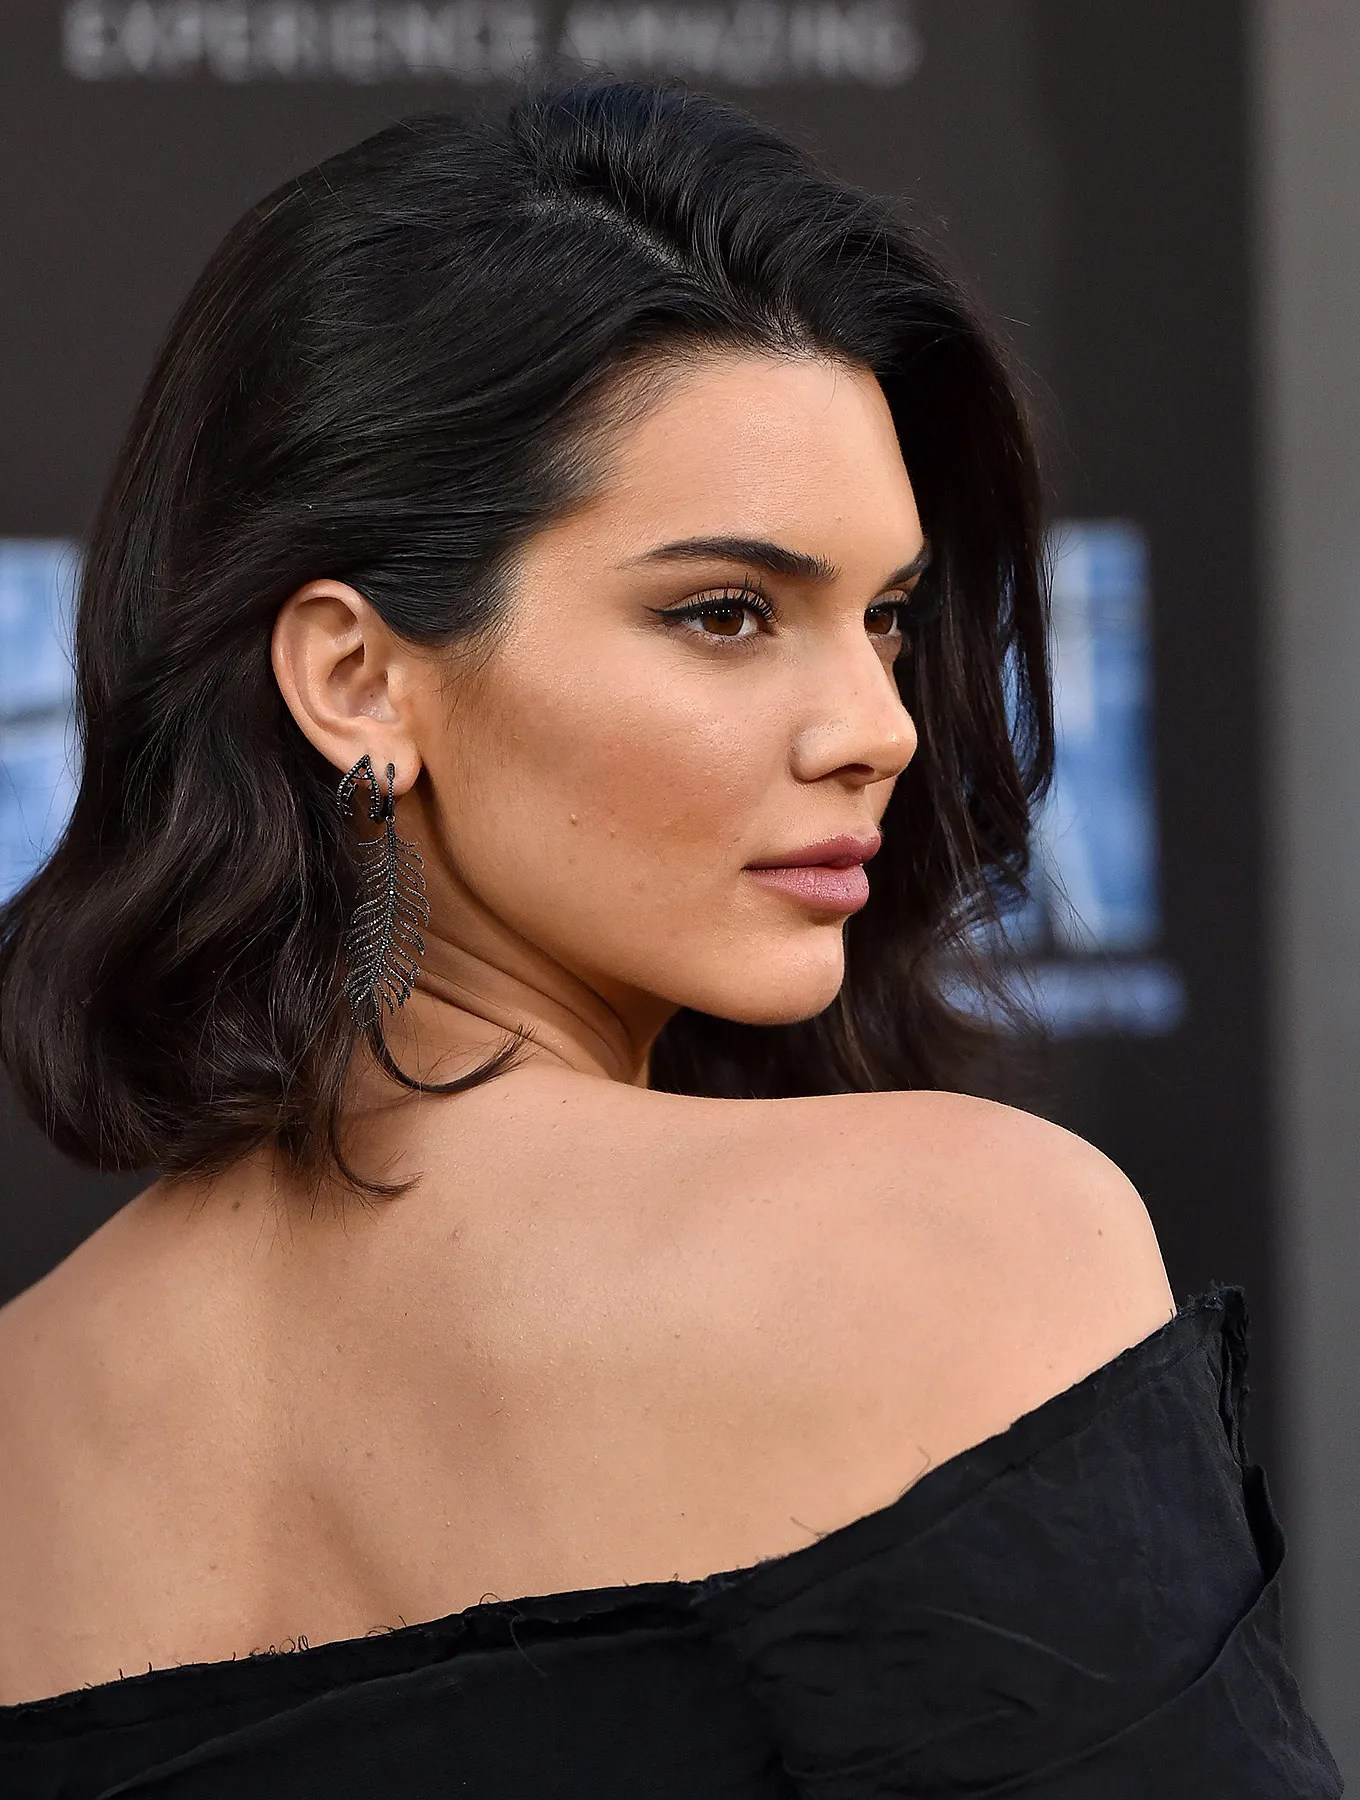 The model and television personality reached fame by appearing on the reality tv show keeping up with the kardashians. Kendall Jenner Luce Cabello Largo Un Look Que Pinta Como Tendencia De 2021 Vogue